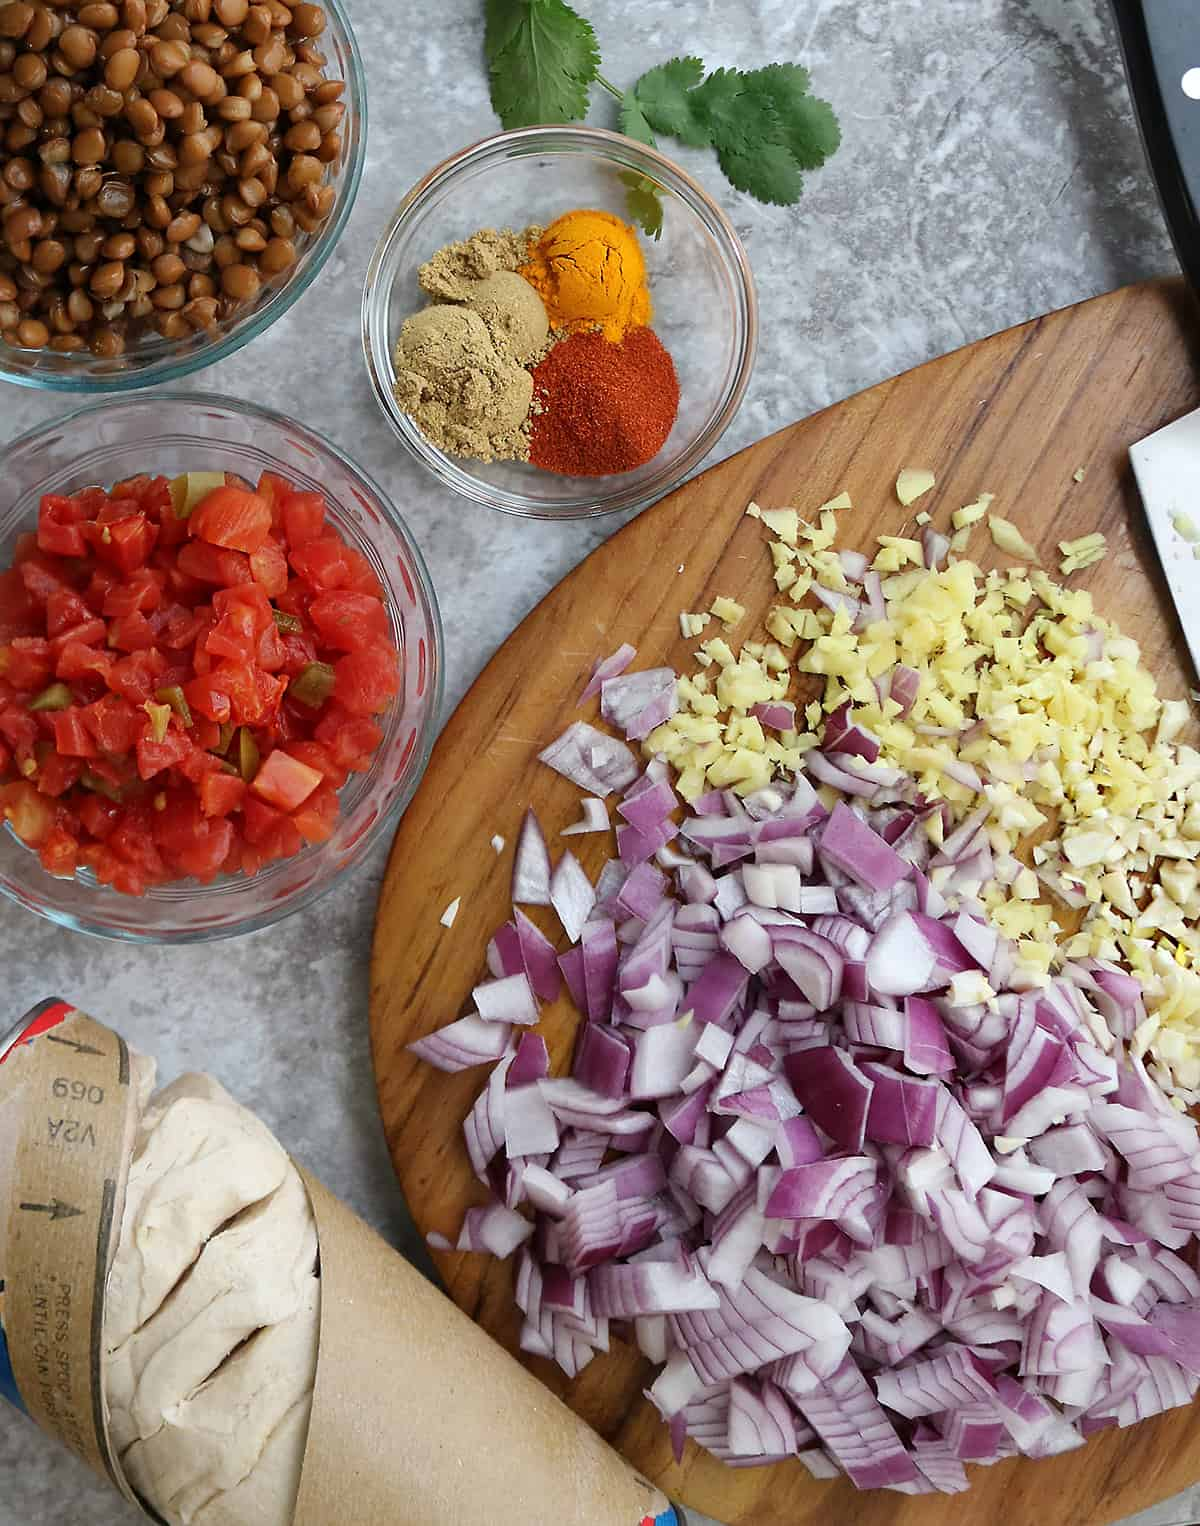 Ingredients for lentil stuffed buns